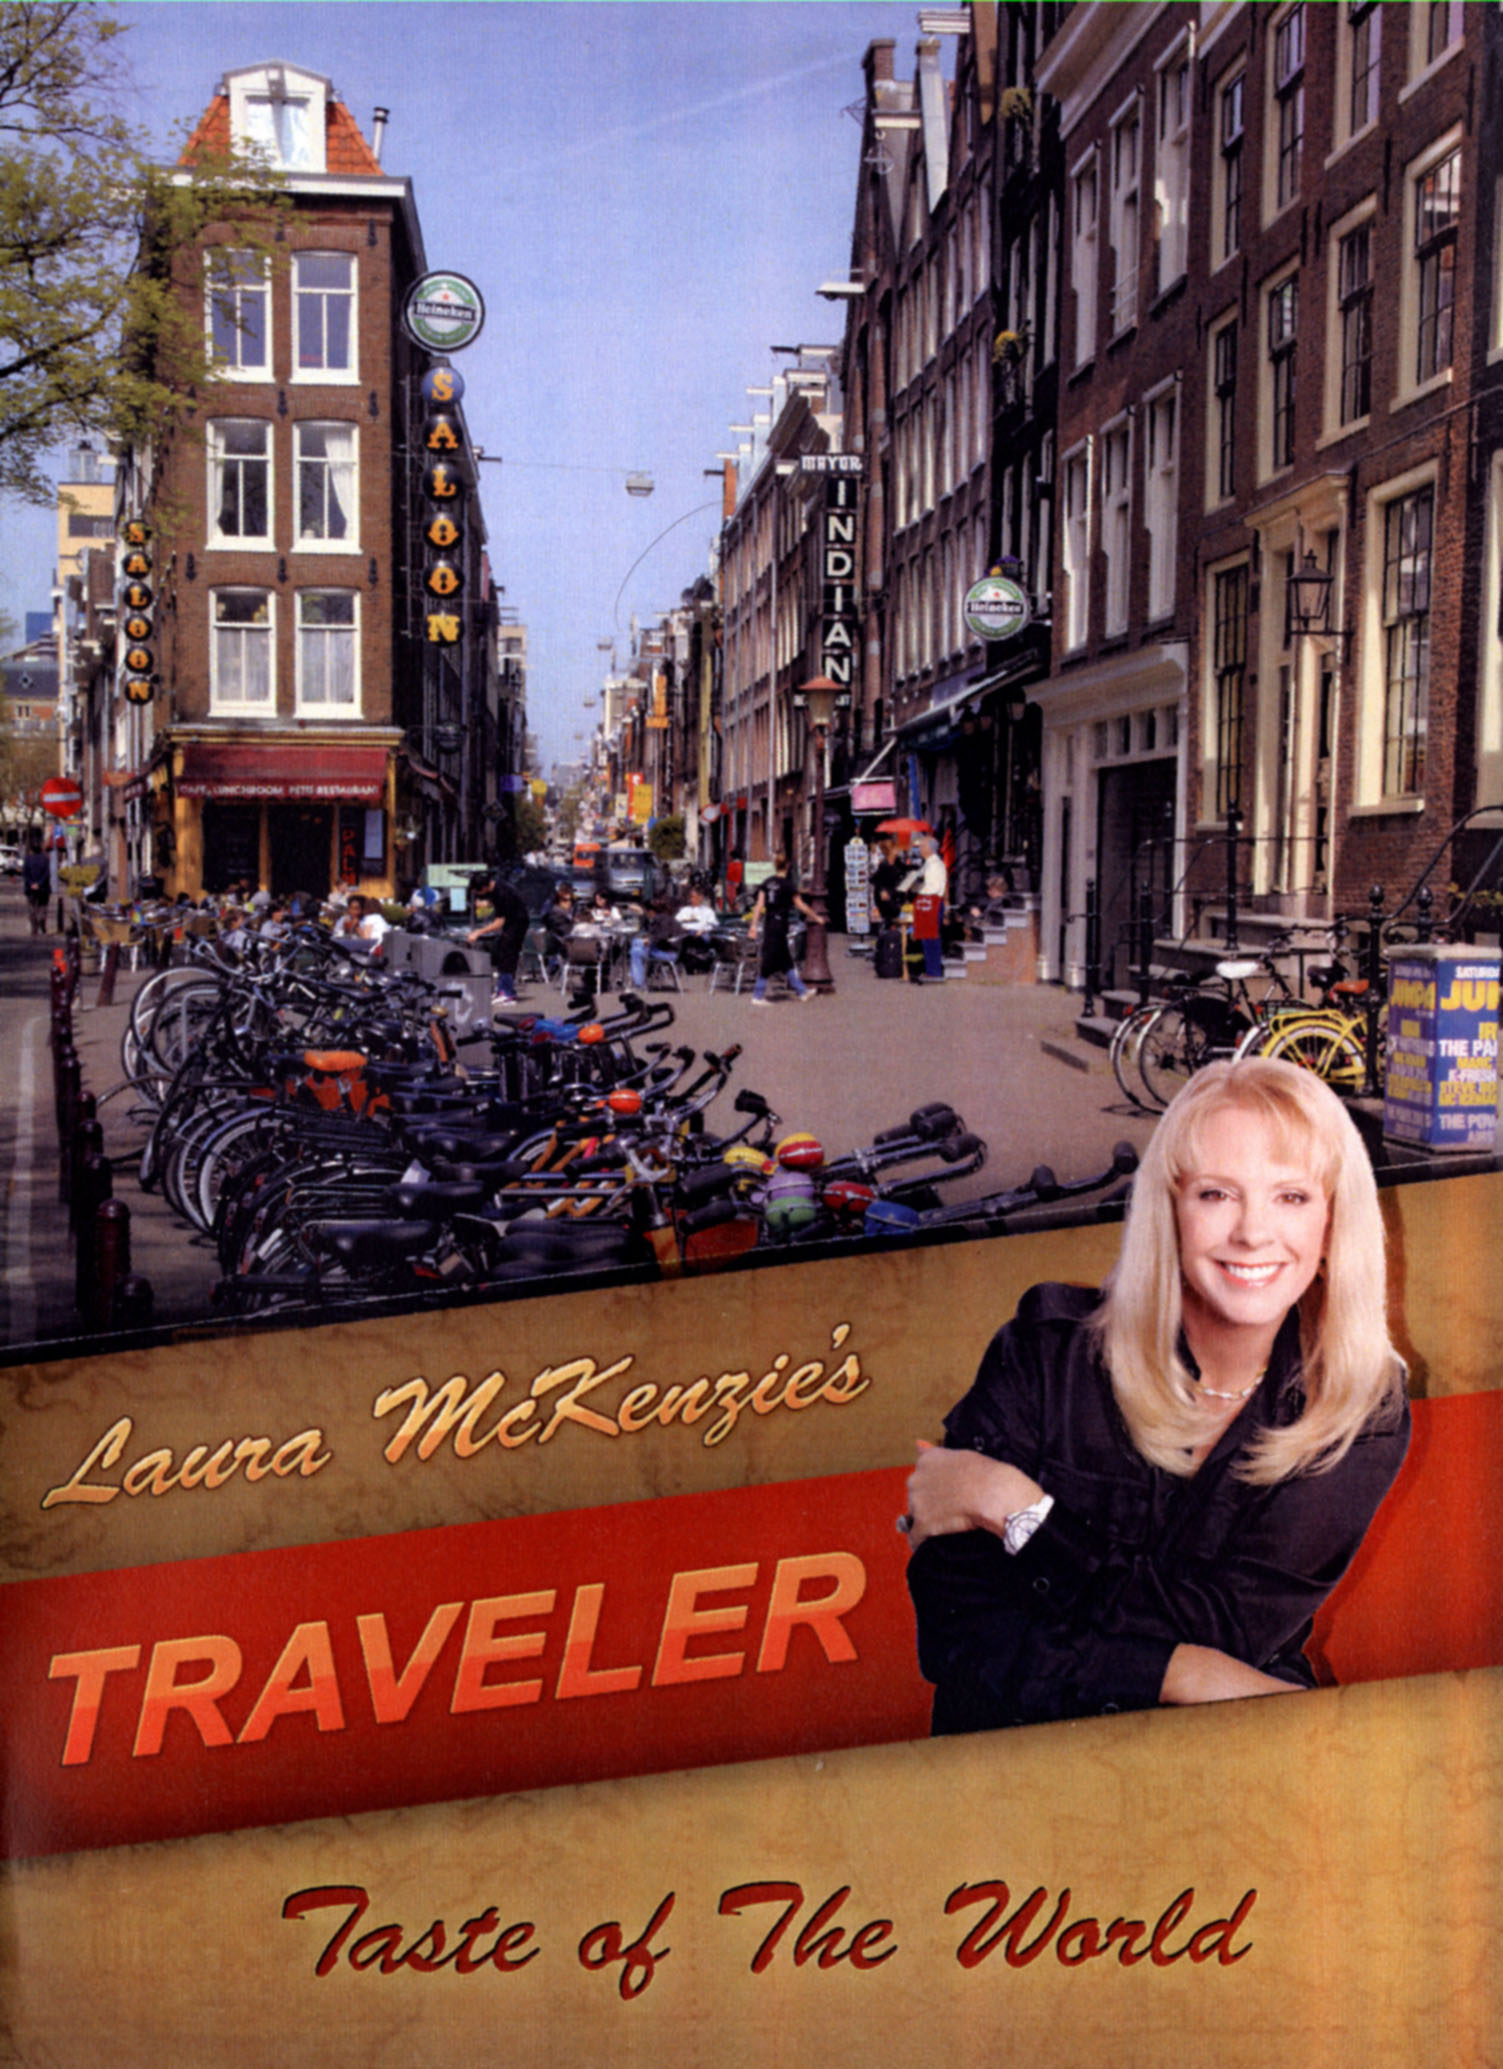 Laura McKenzie's Traveler: Taste of the World